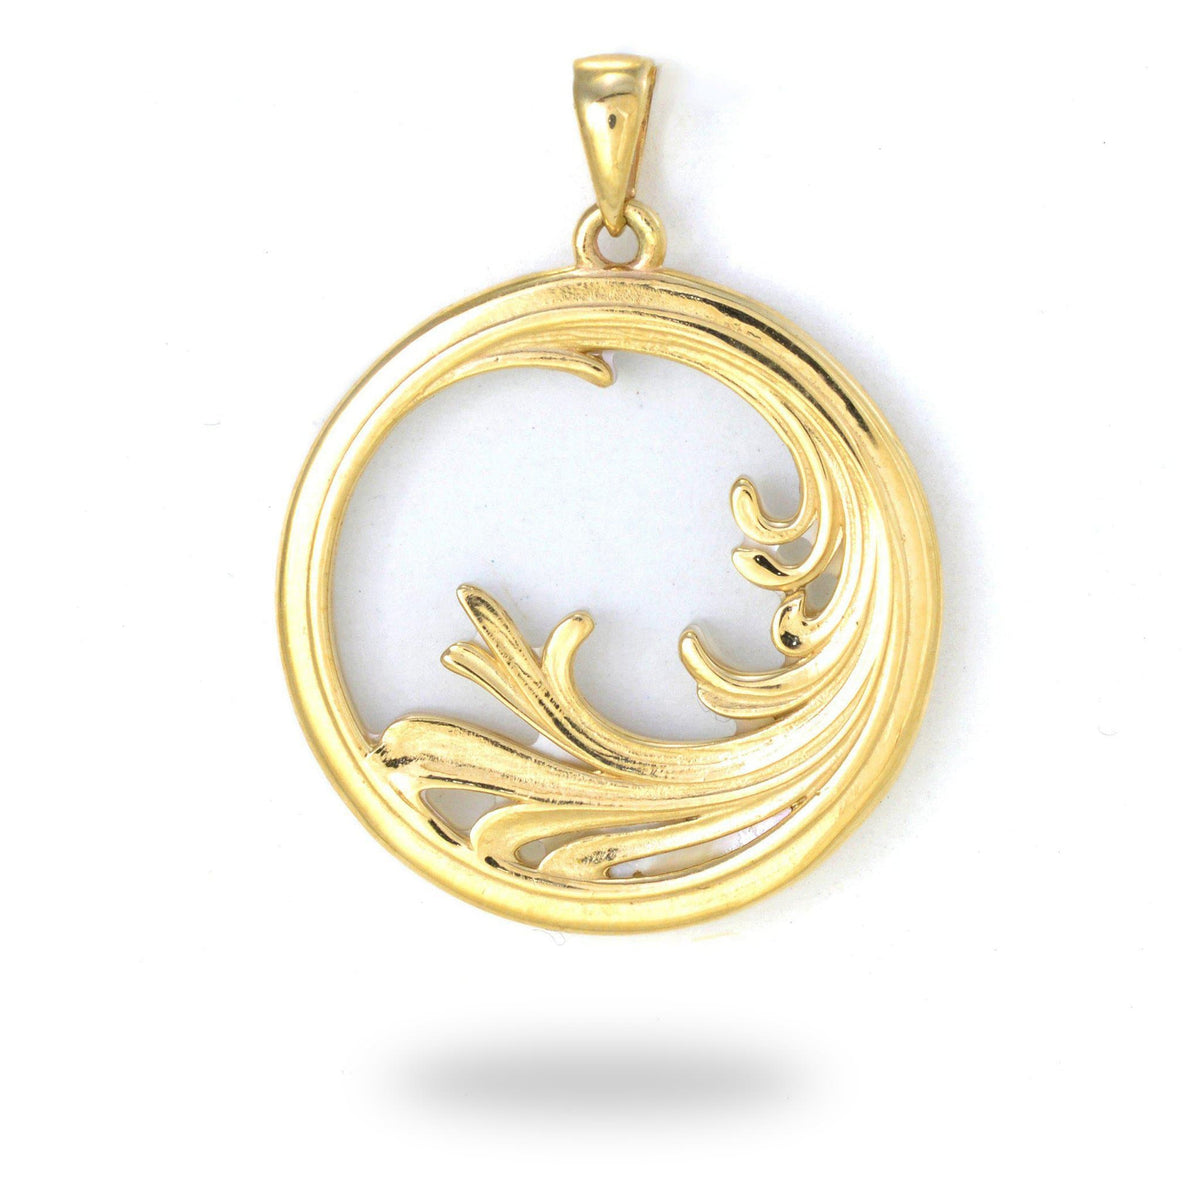 Nalu Splash Mother of Pearl Pendant in Gold - 27mm